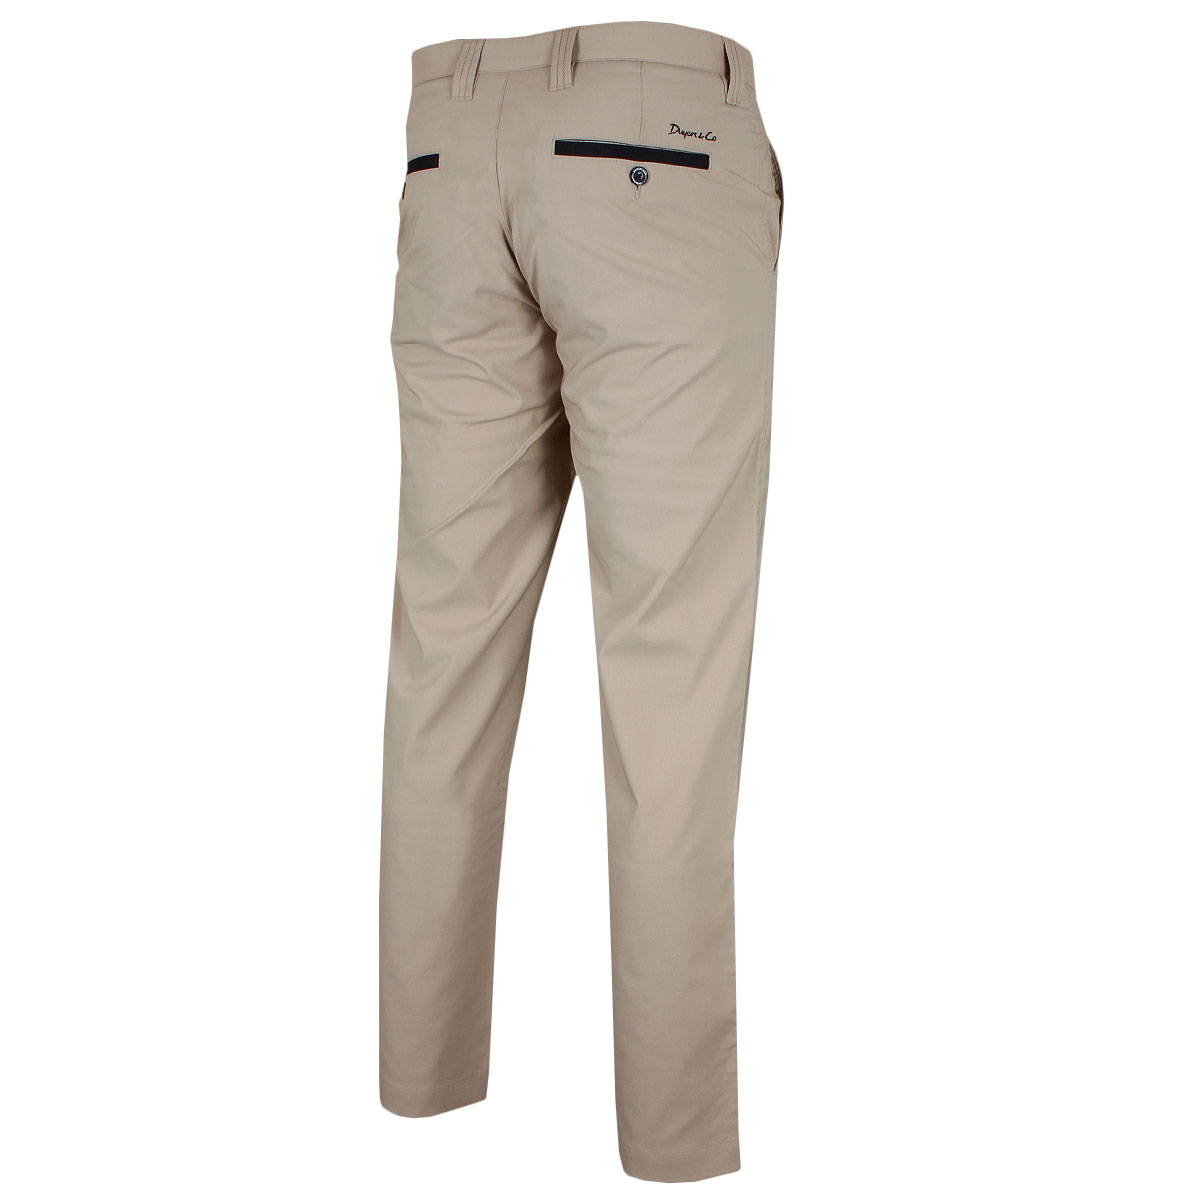 Dwyers-amp-Co-Mens-Matchplay-Stretch-Lightweight-Golf-Trousers-38-OFF-RRP thumbnail 3